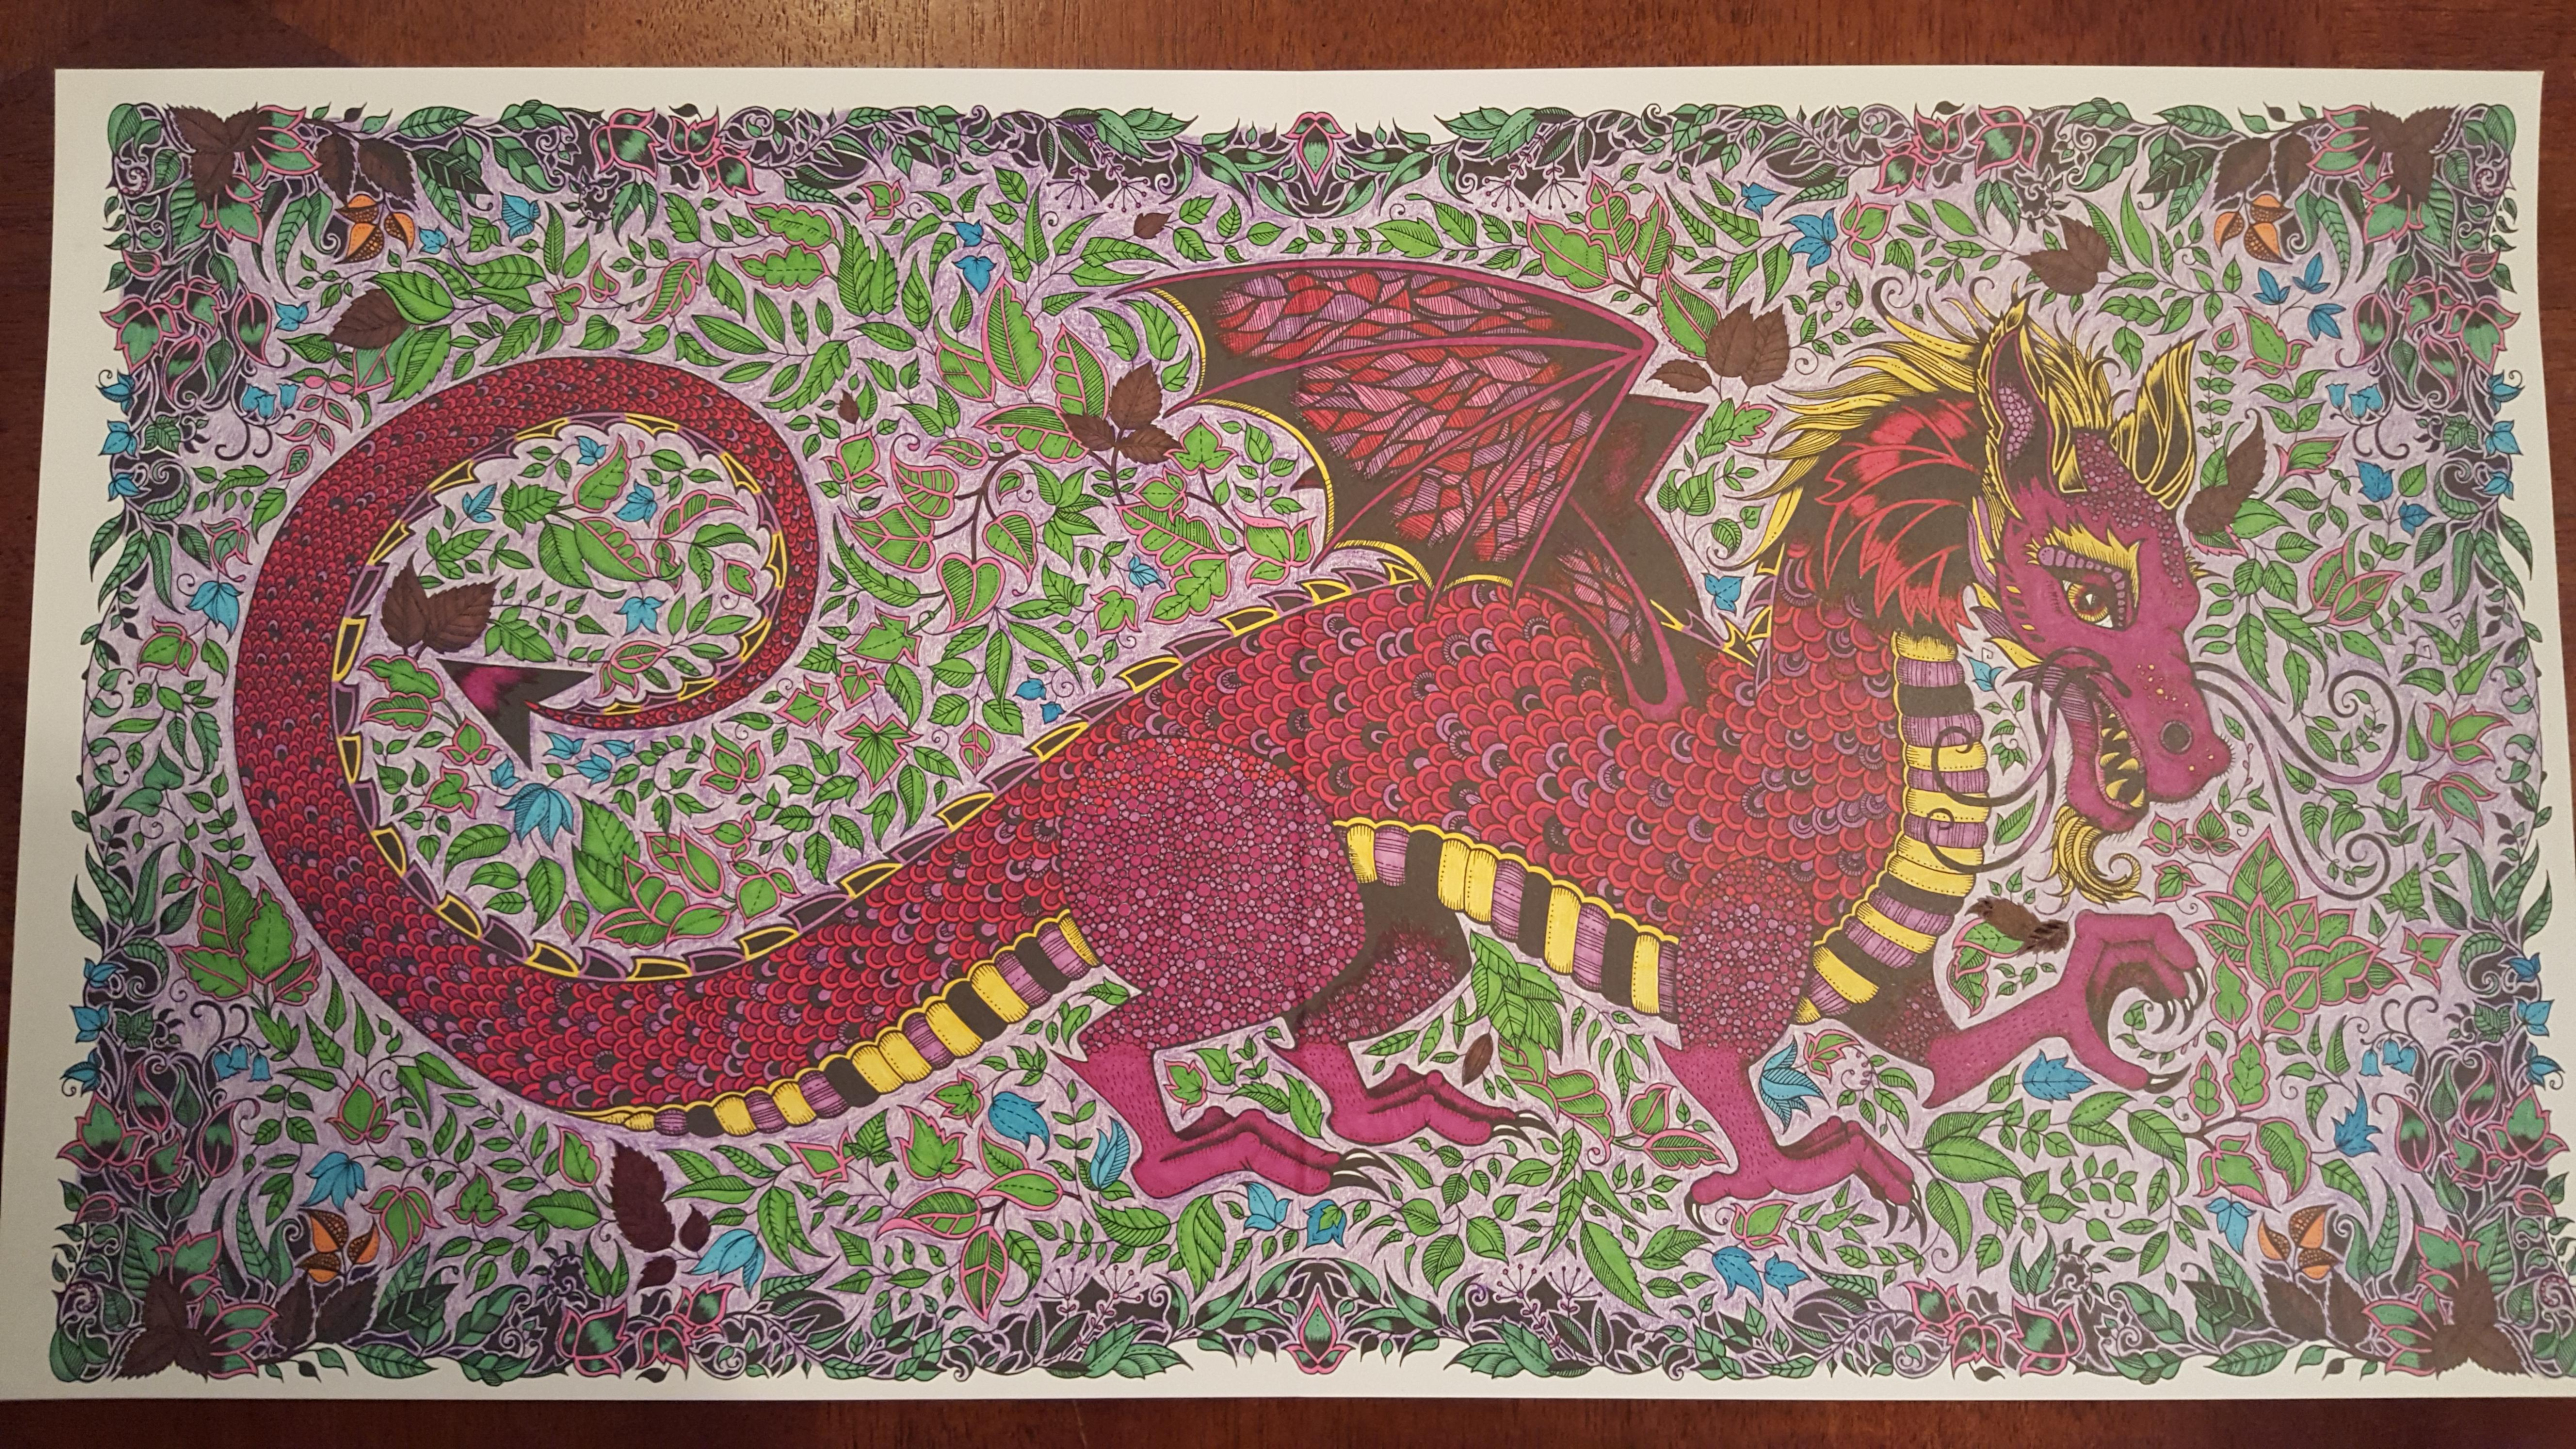 Dragon - Enchanted Forest Coloring Book - Imgur - enchanted forest coloring book